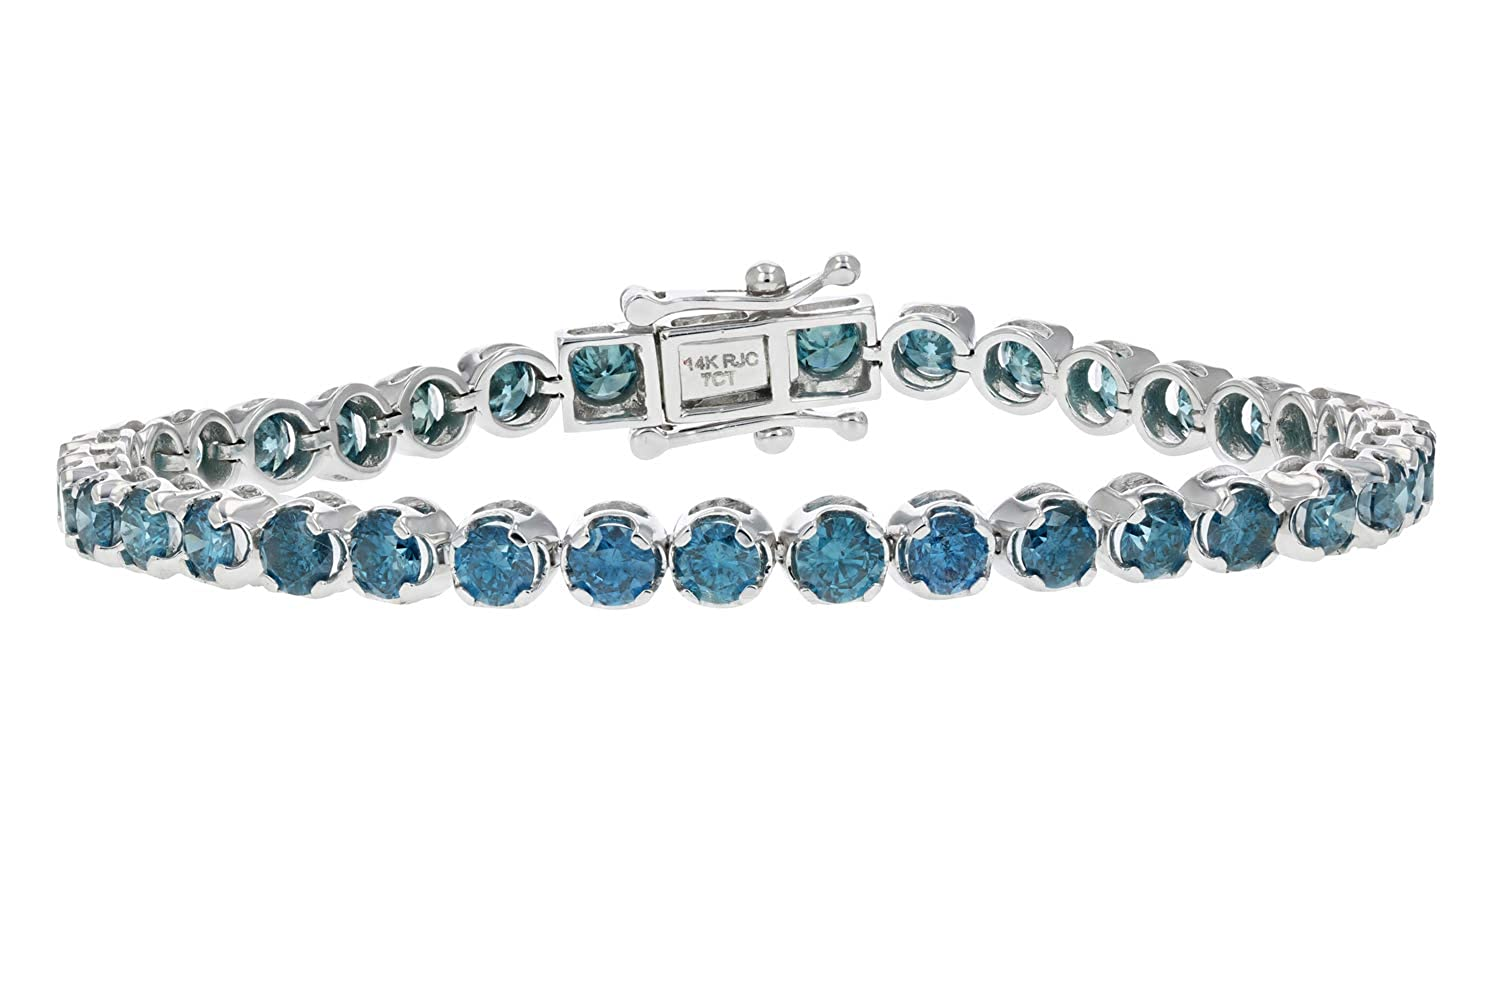 096f8883094d0 Amazon.com: 8 CT 14K White Gold Blue Diamond Bracelet: Jewelry